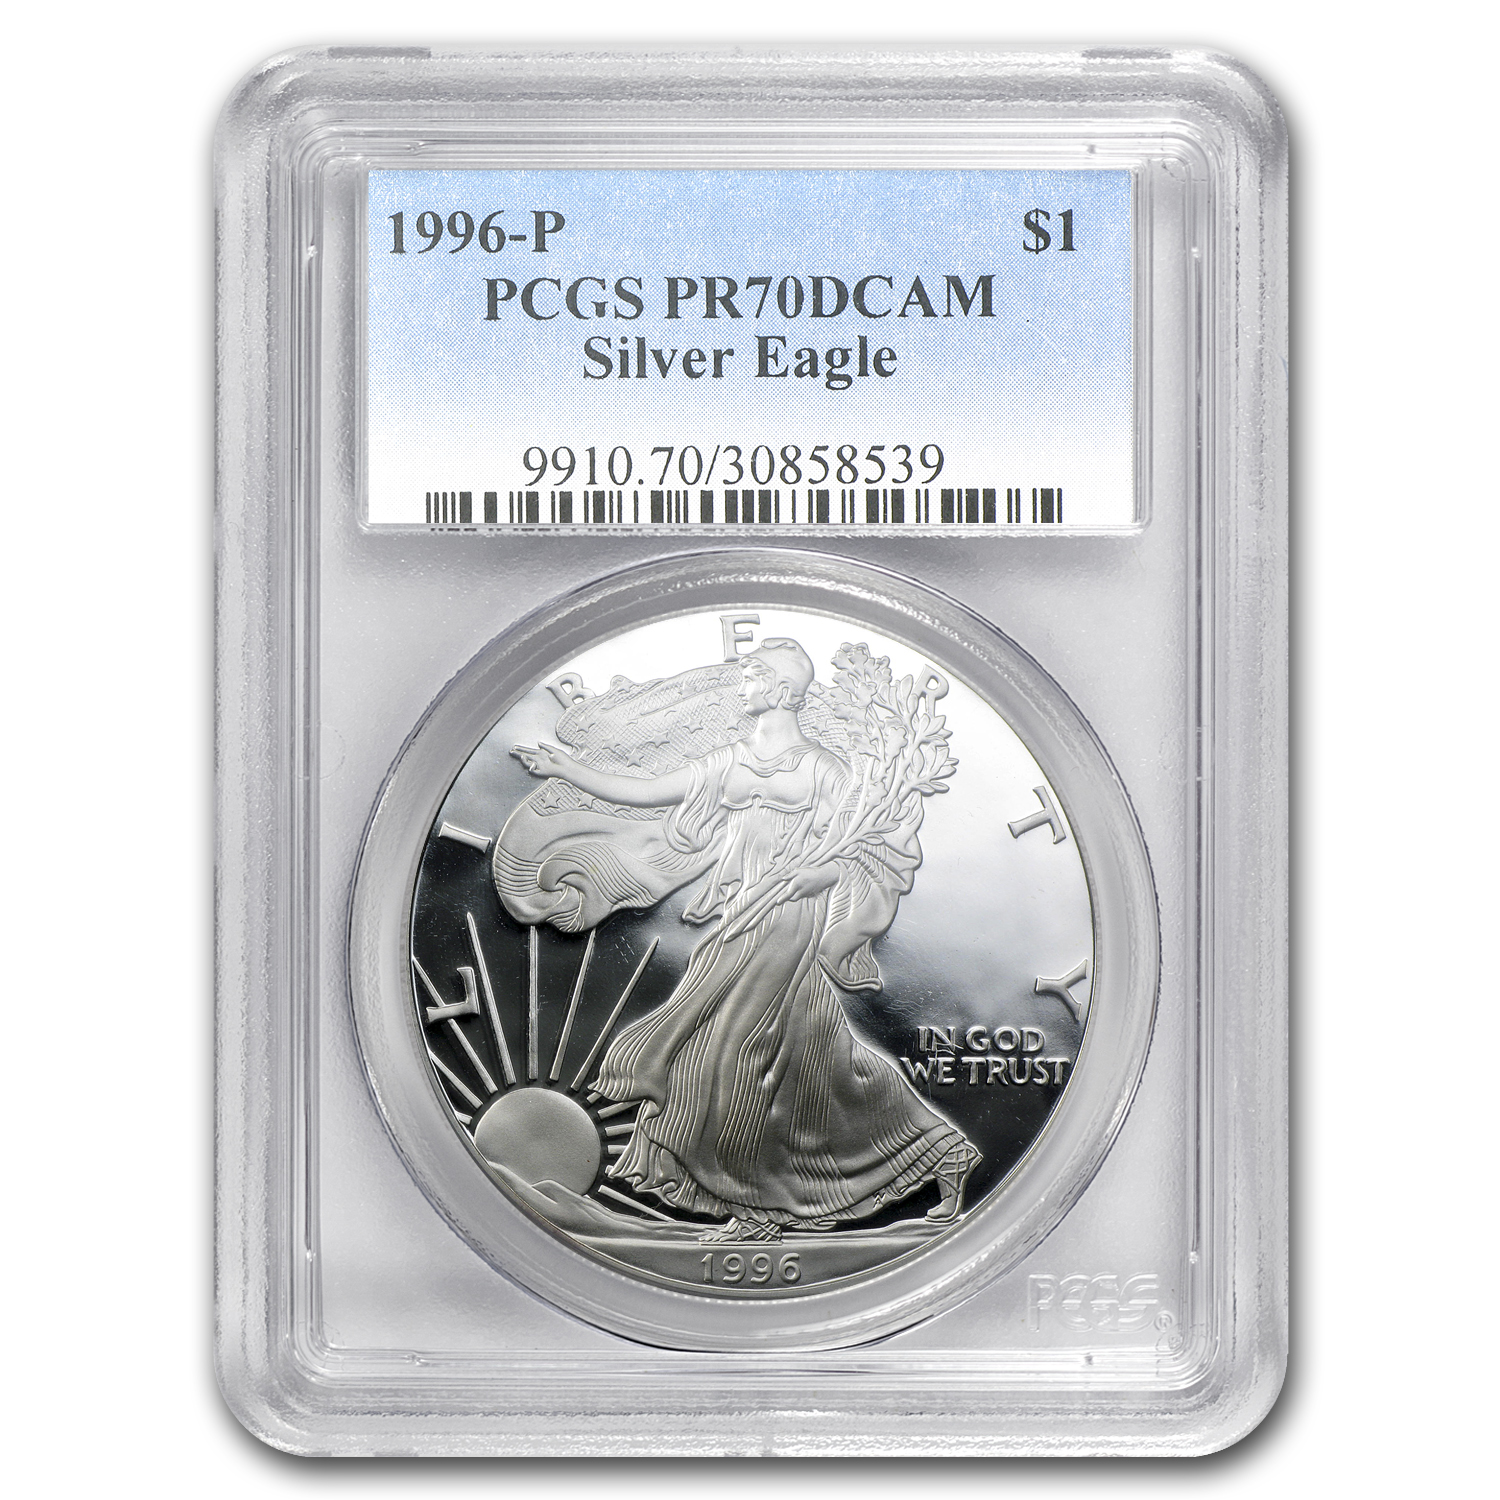 1996-P (Proof) Silver American Eagle PR-70 PCGS Registry Set